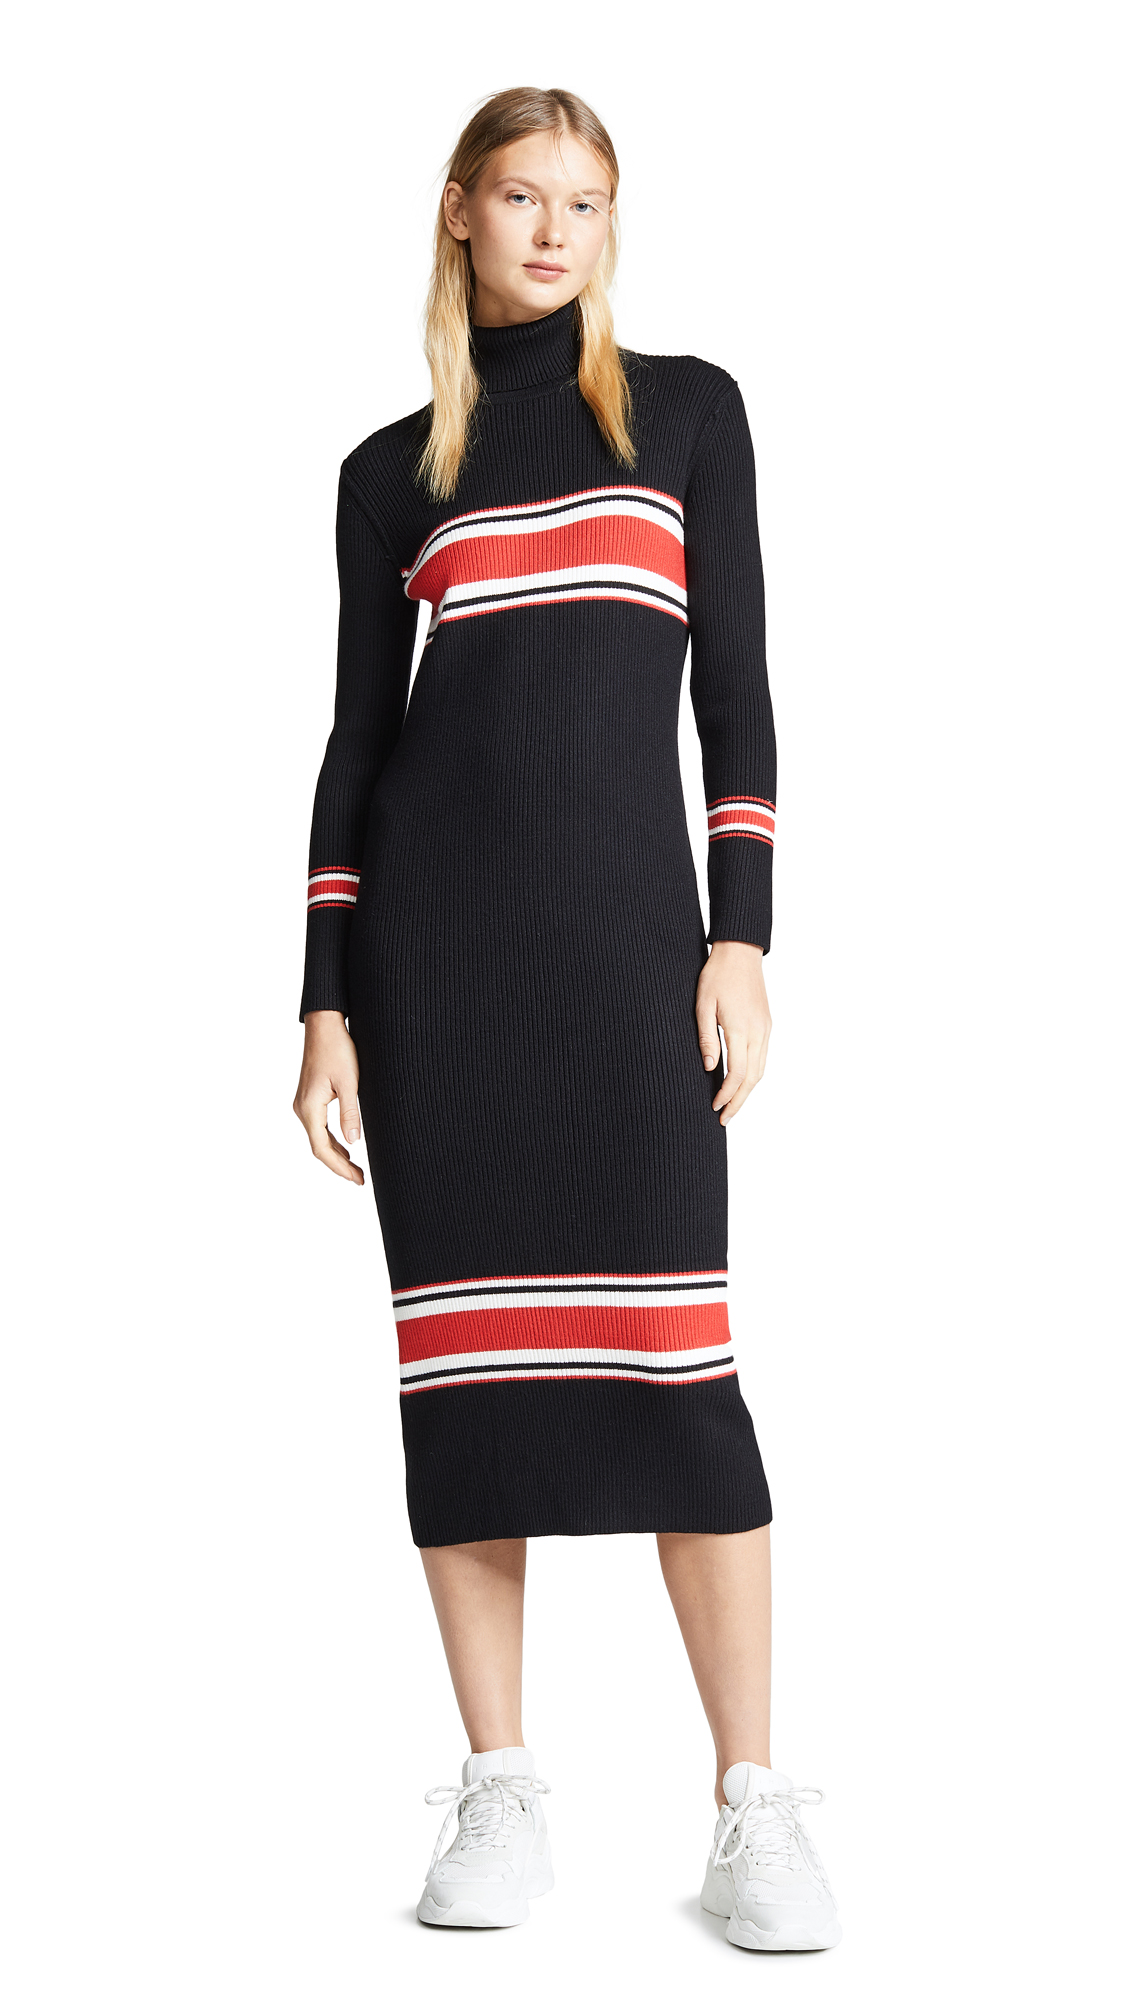 Free People Sport Stripe Midi Dress - Black